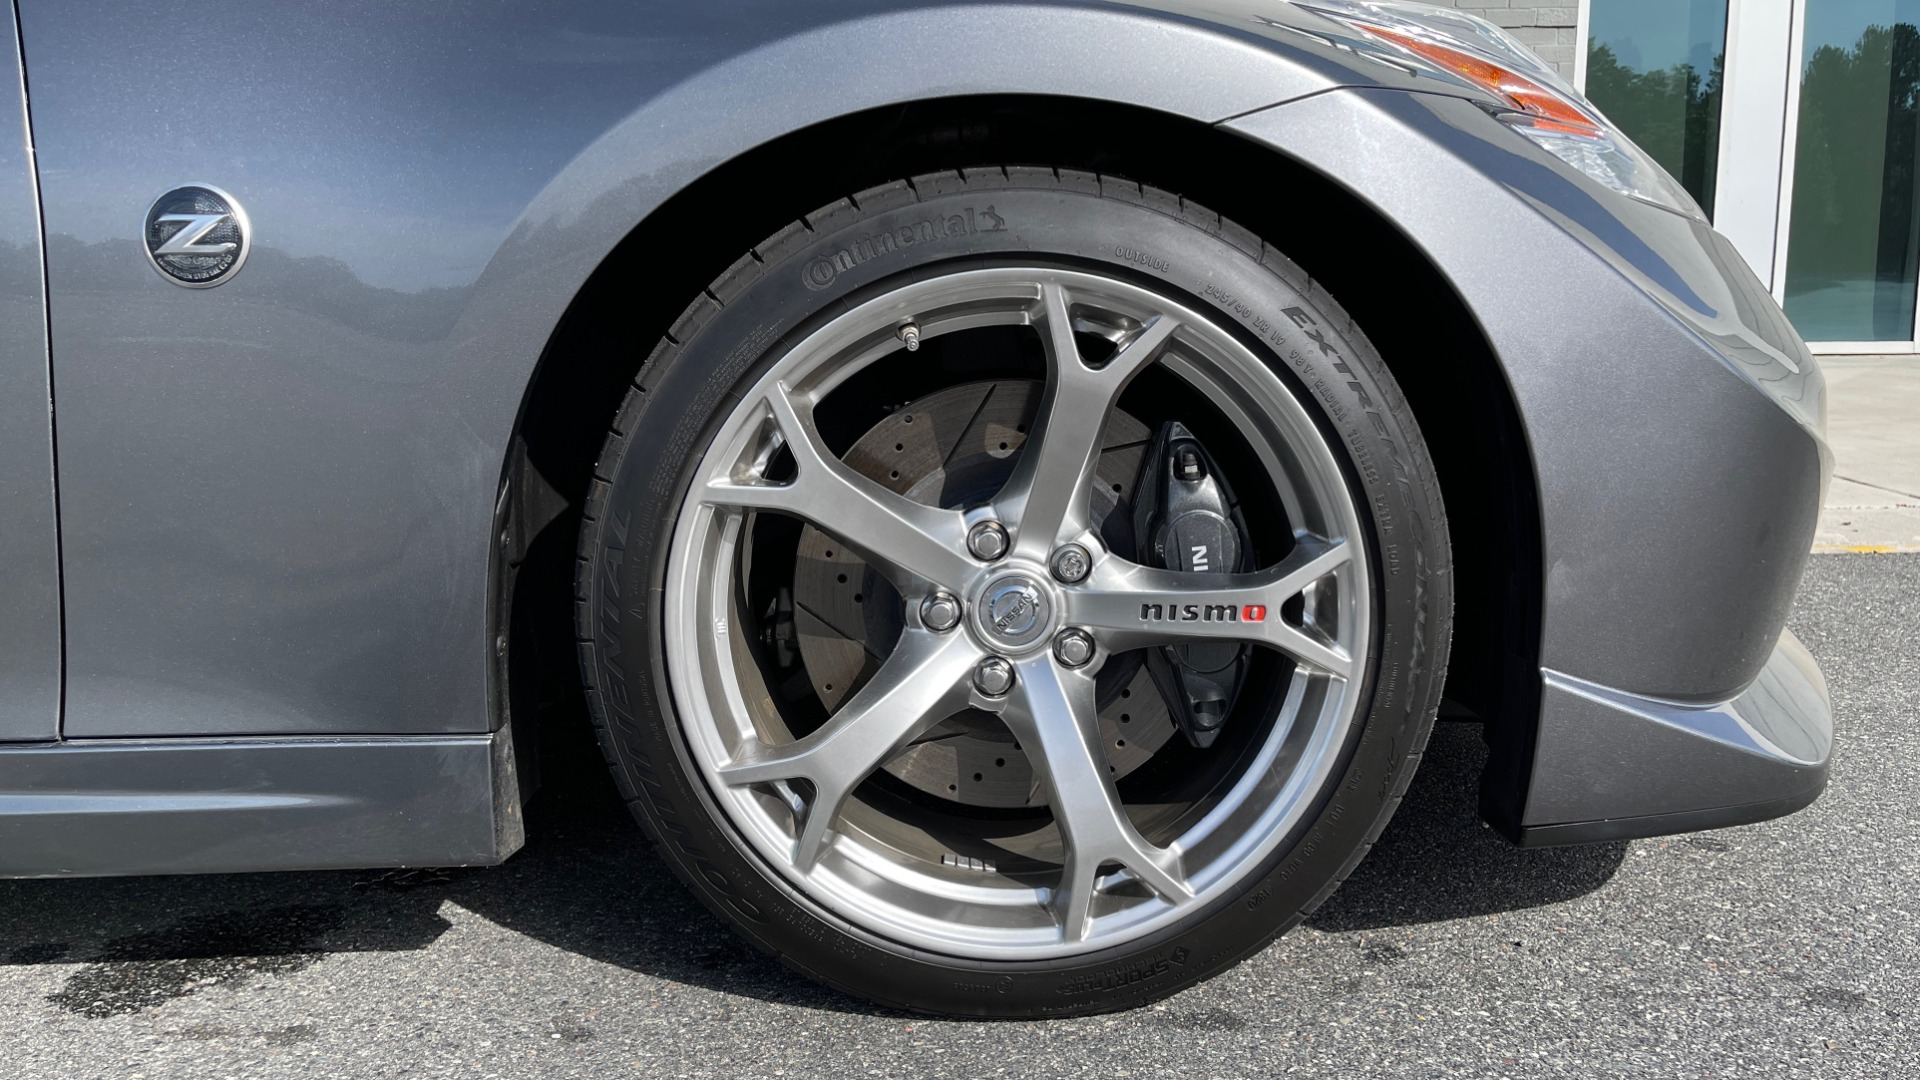 Used 2011 Nissan 370Z NISMO COUPE / 3.7L V6 / 6-SPD MAN / AUTO CLIMATE CONTROL for sale $32,995 at Formula Imports in Charlotte NC 28227 51